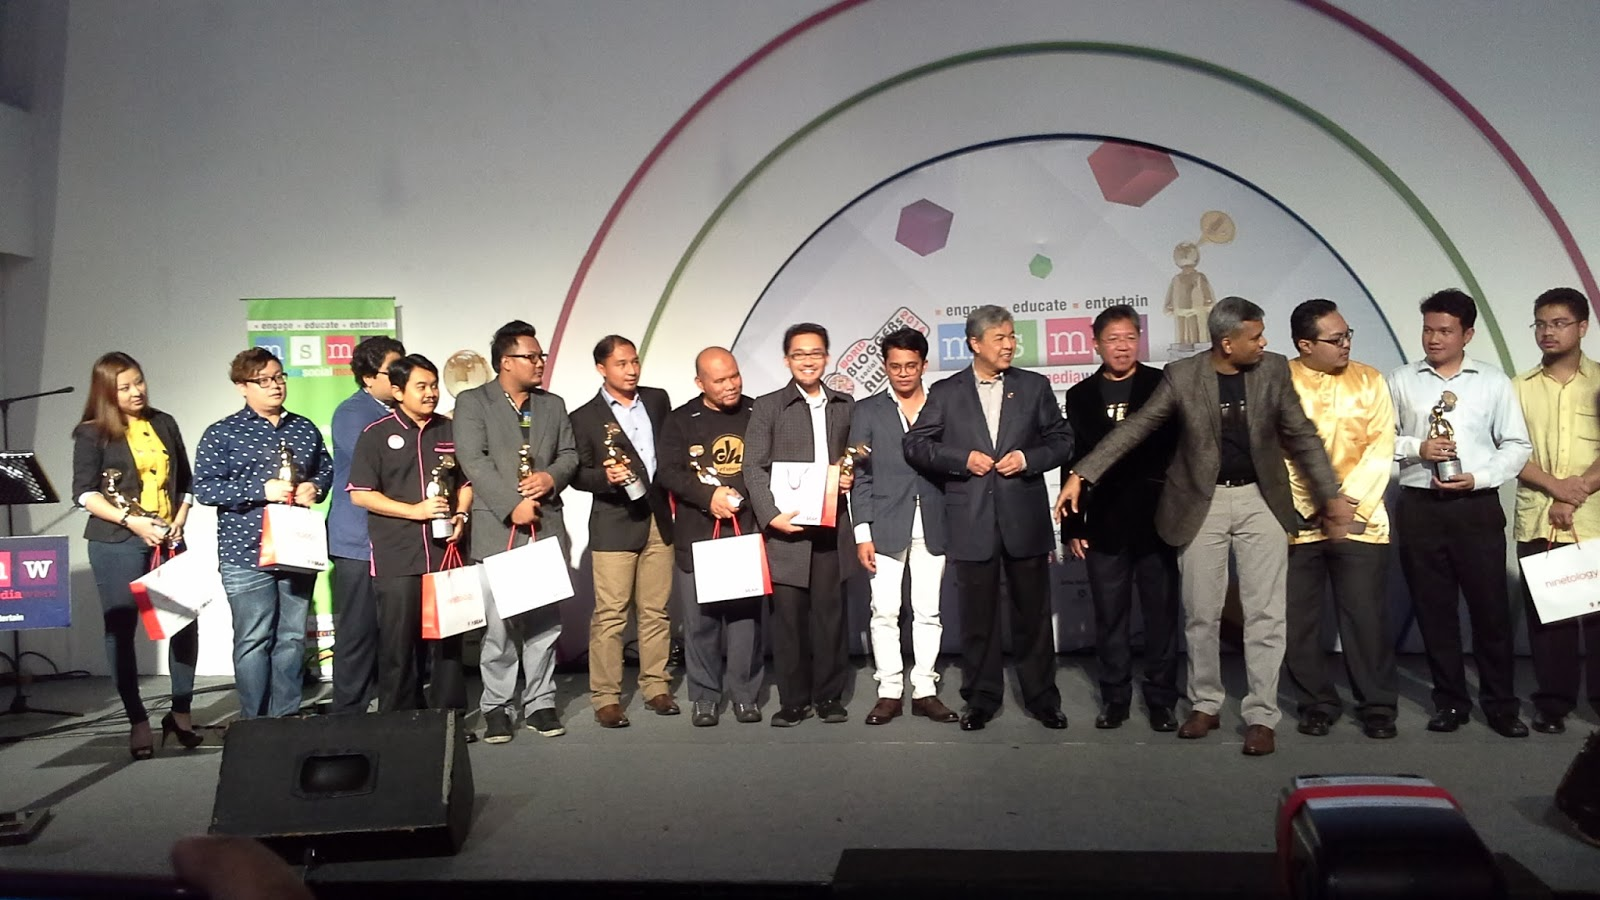 CiKGUHAiLMi Menang Best Educational Blog MSMW 2014!